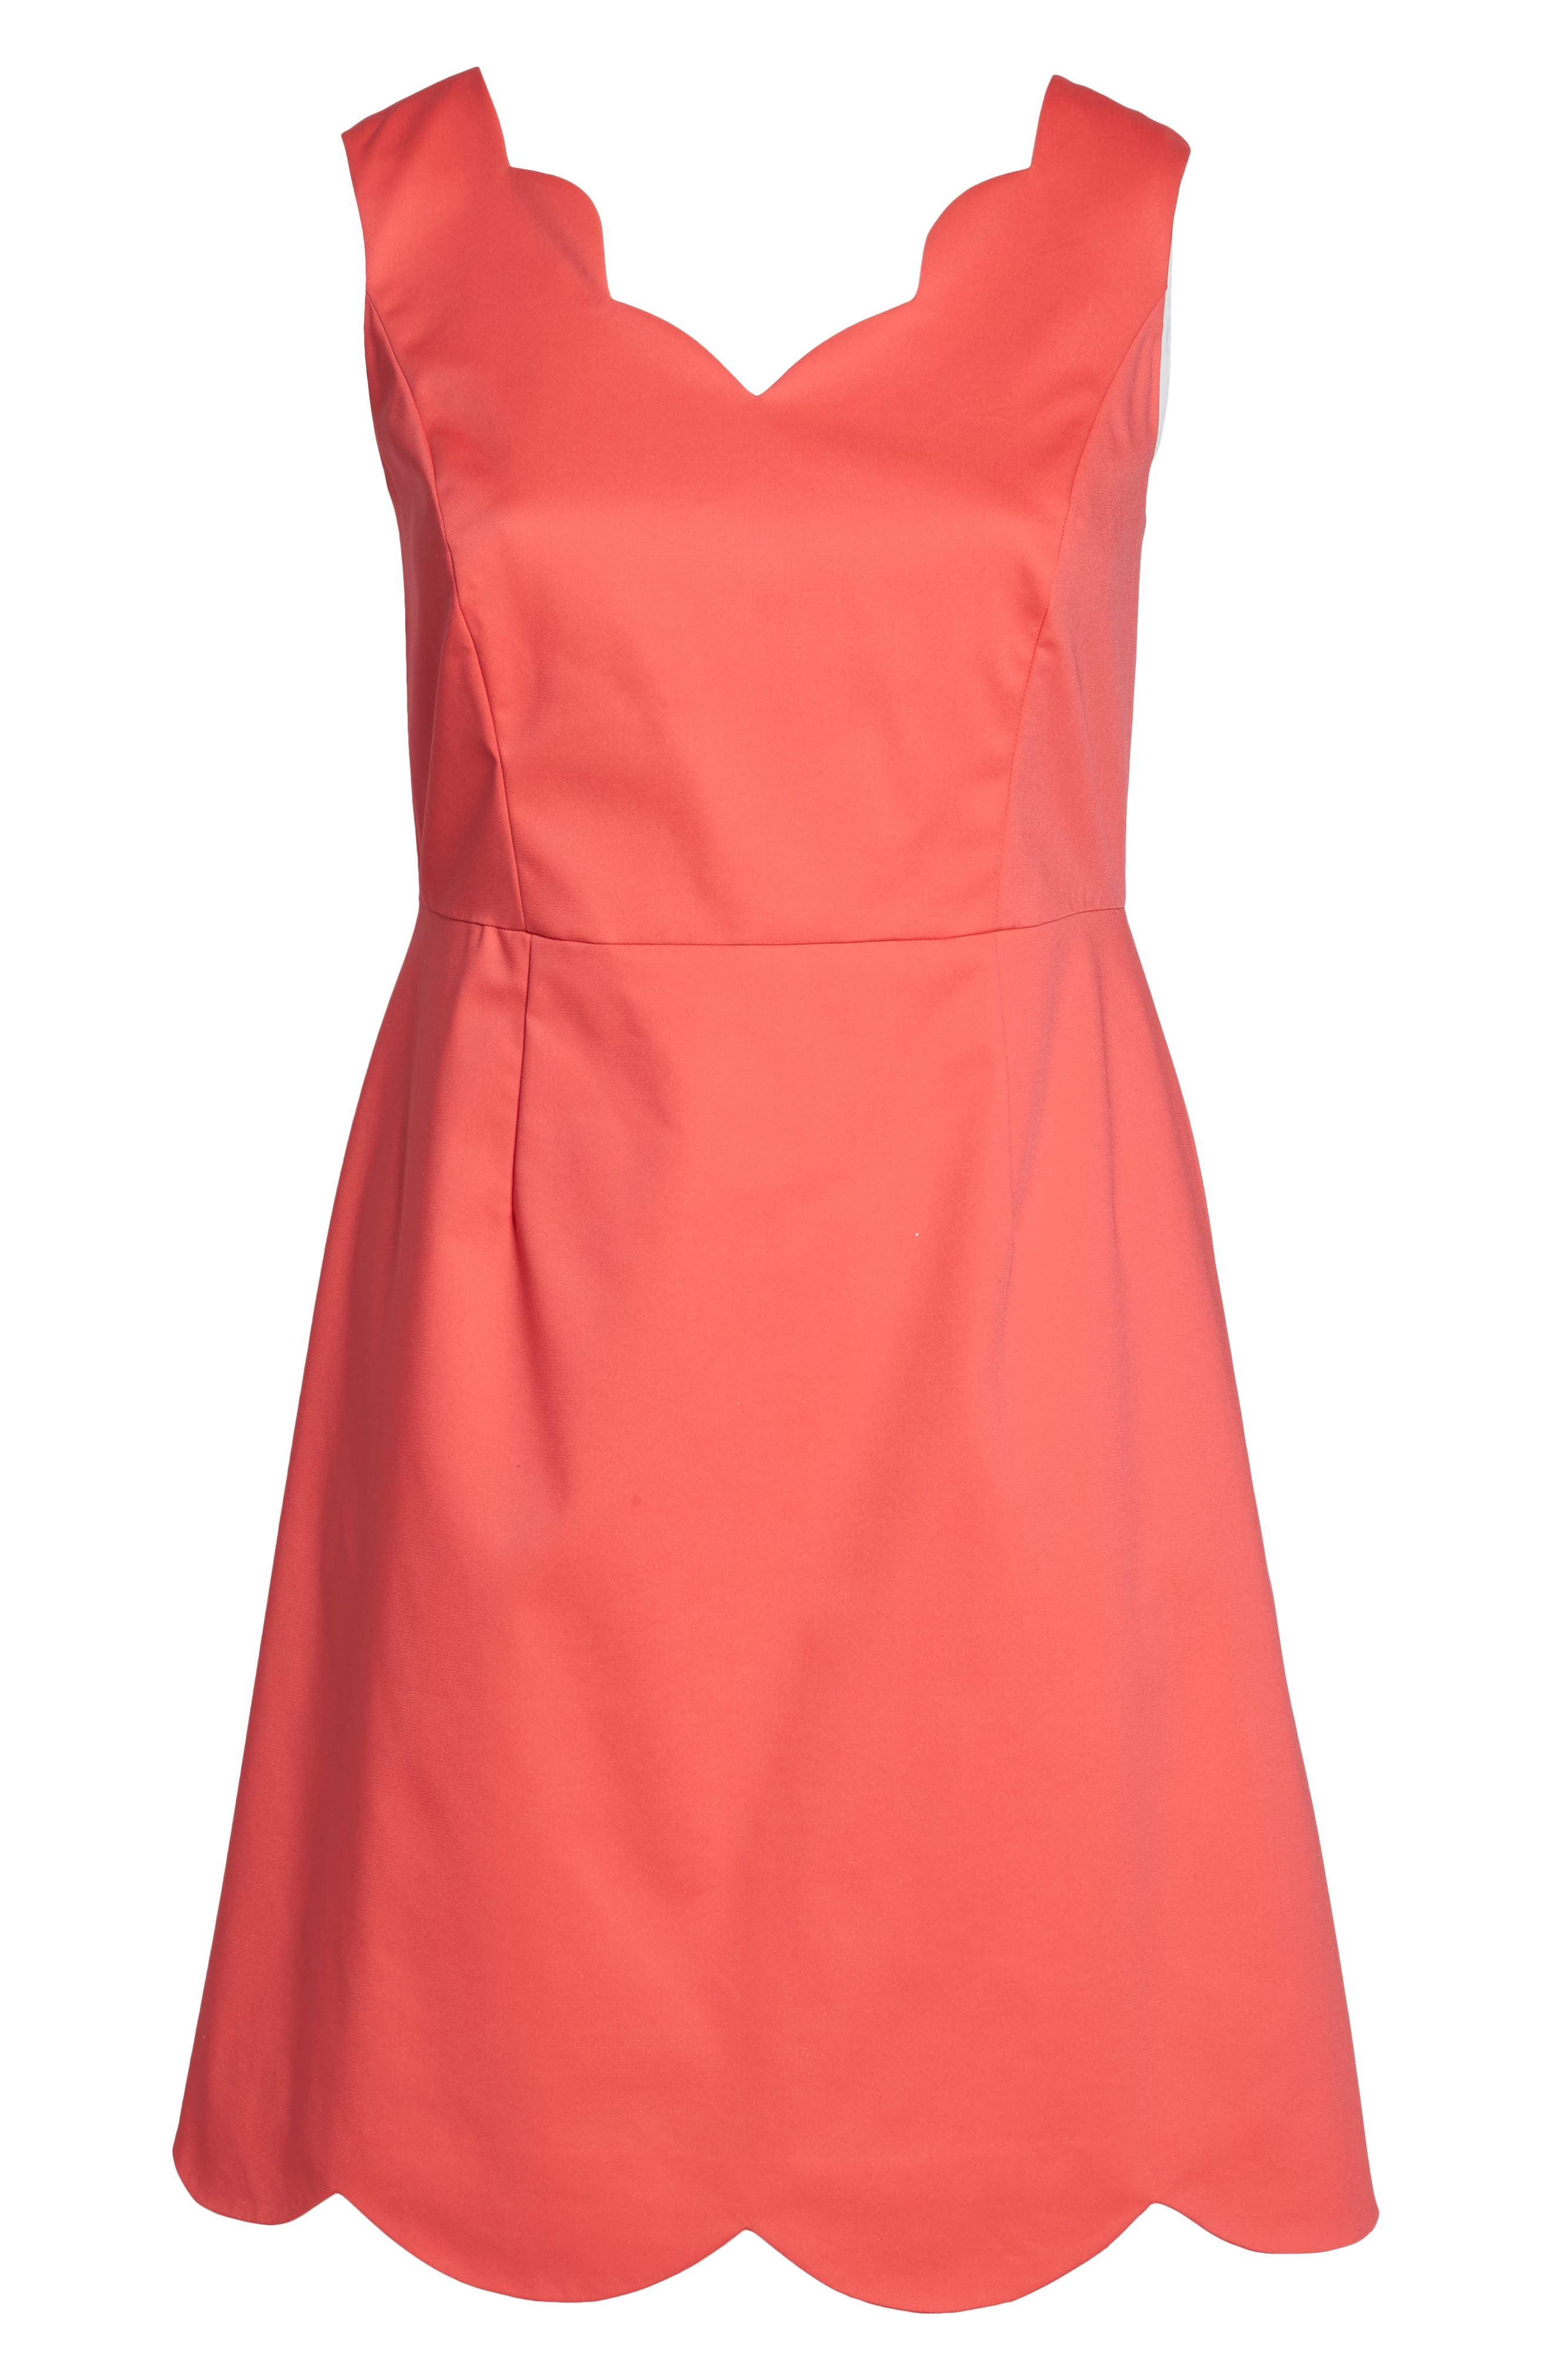 Scalloped A-Line Dress,                             Alternate thumbnail 6, color,                             Strawberry Pink